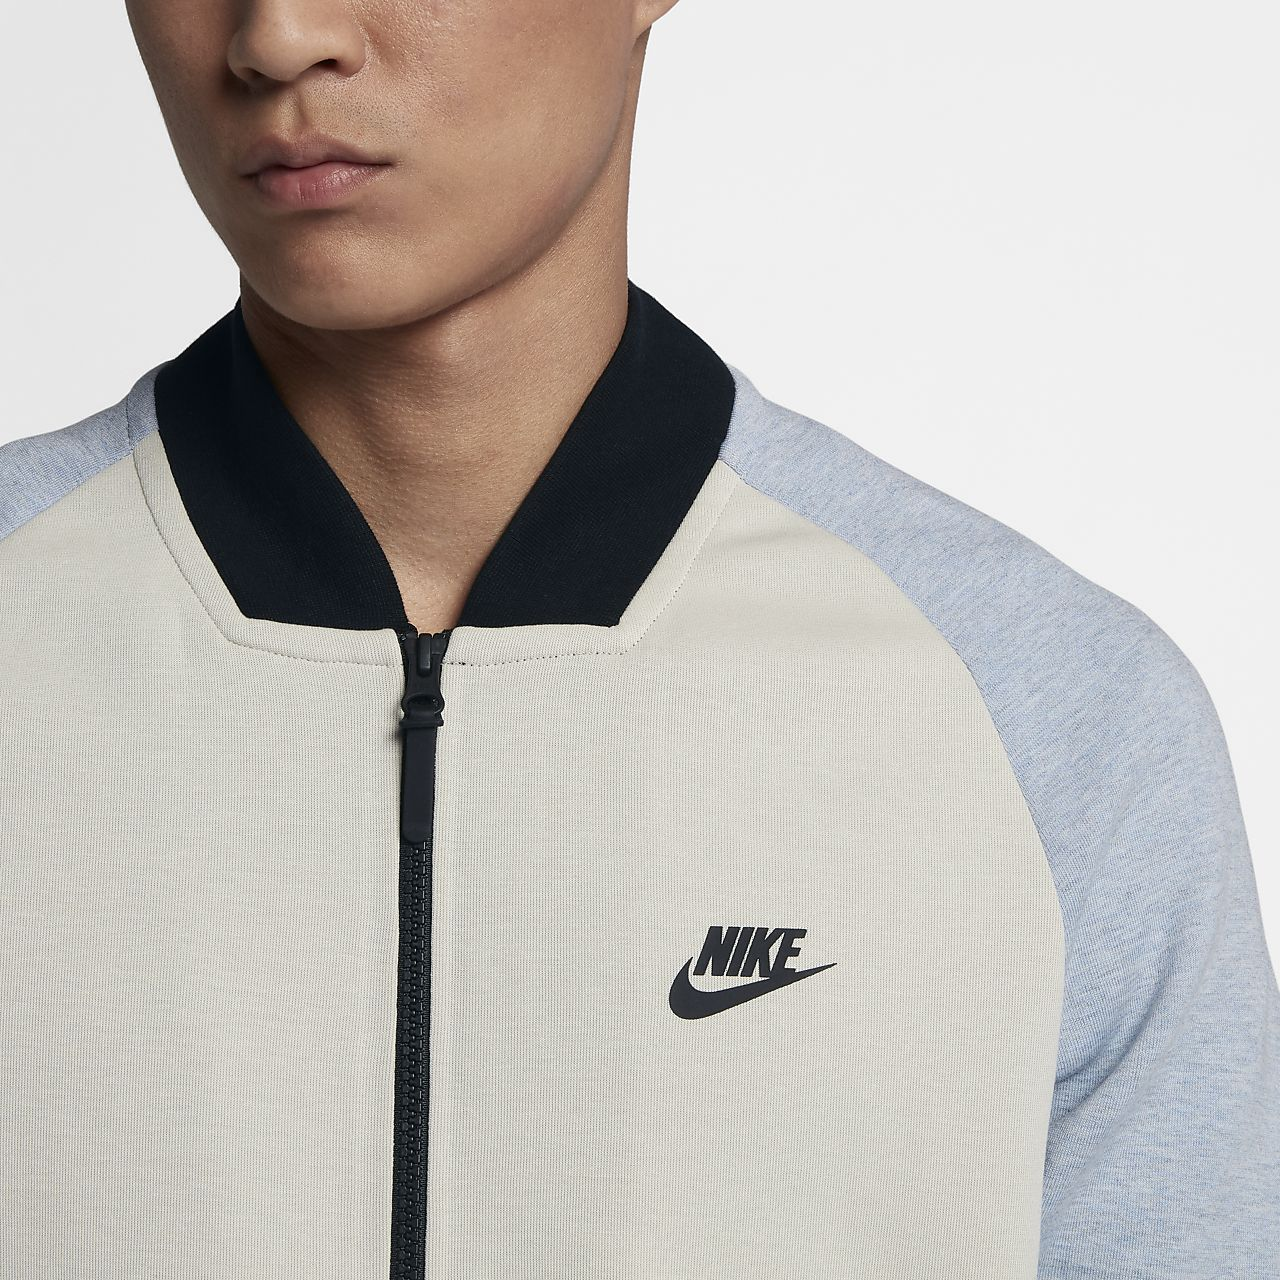 c0e7b102cc14 Nike Sportswear Tech Fleece Men s Varsity Jacket. Nike.com CA